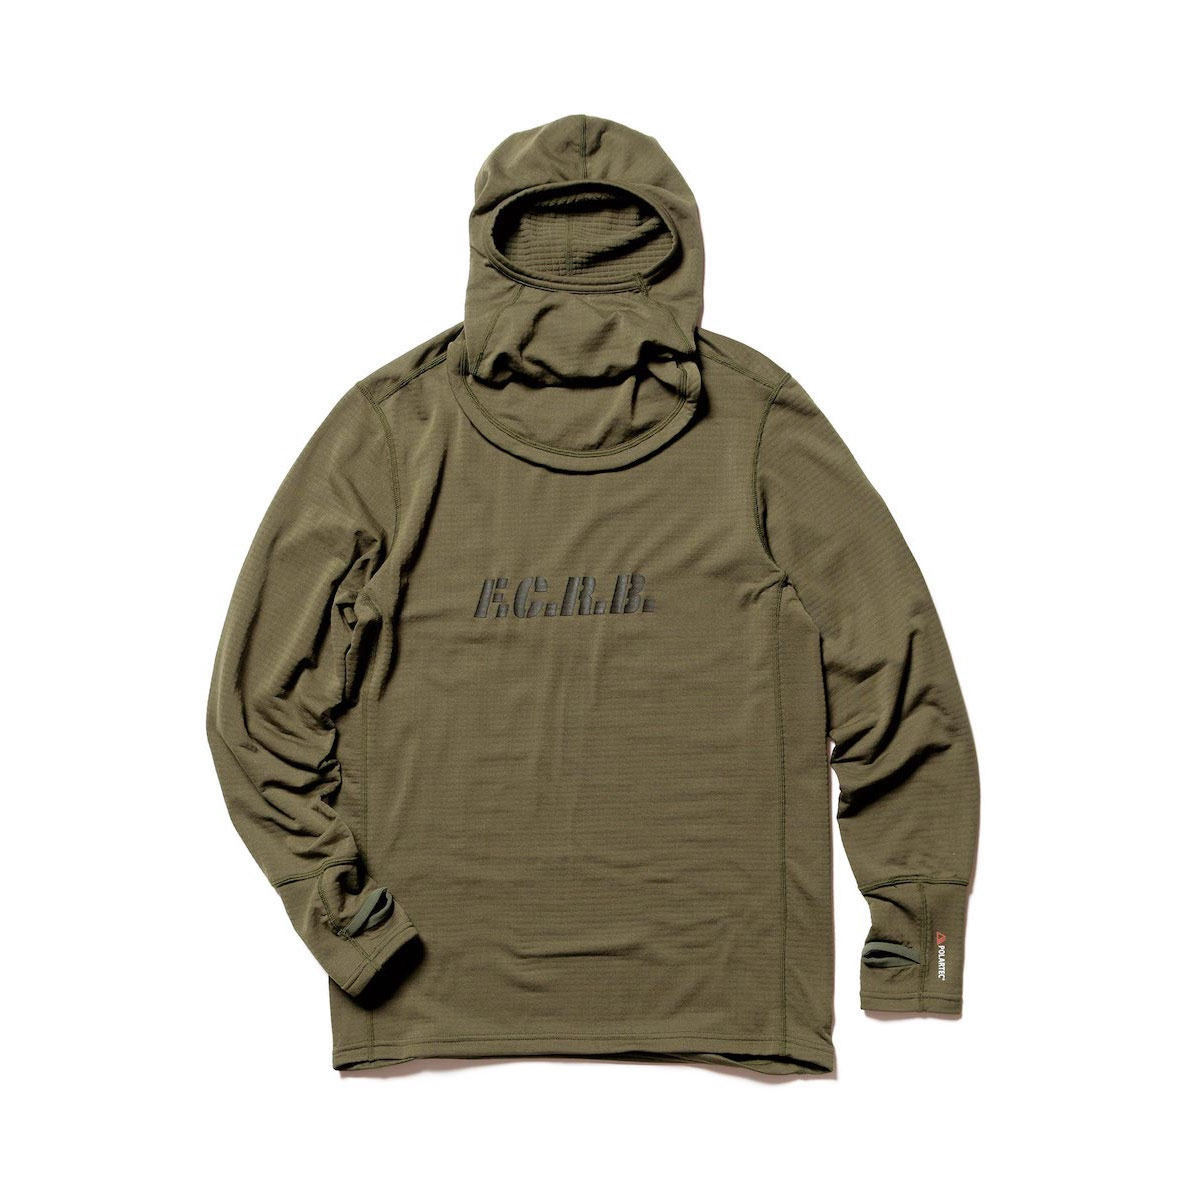 F.C.Real Bristol / POLARTEC BASE LAYER HOODIE (Khaki)